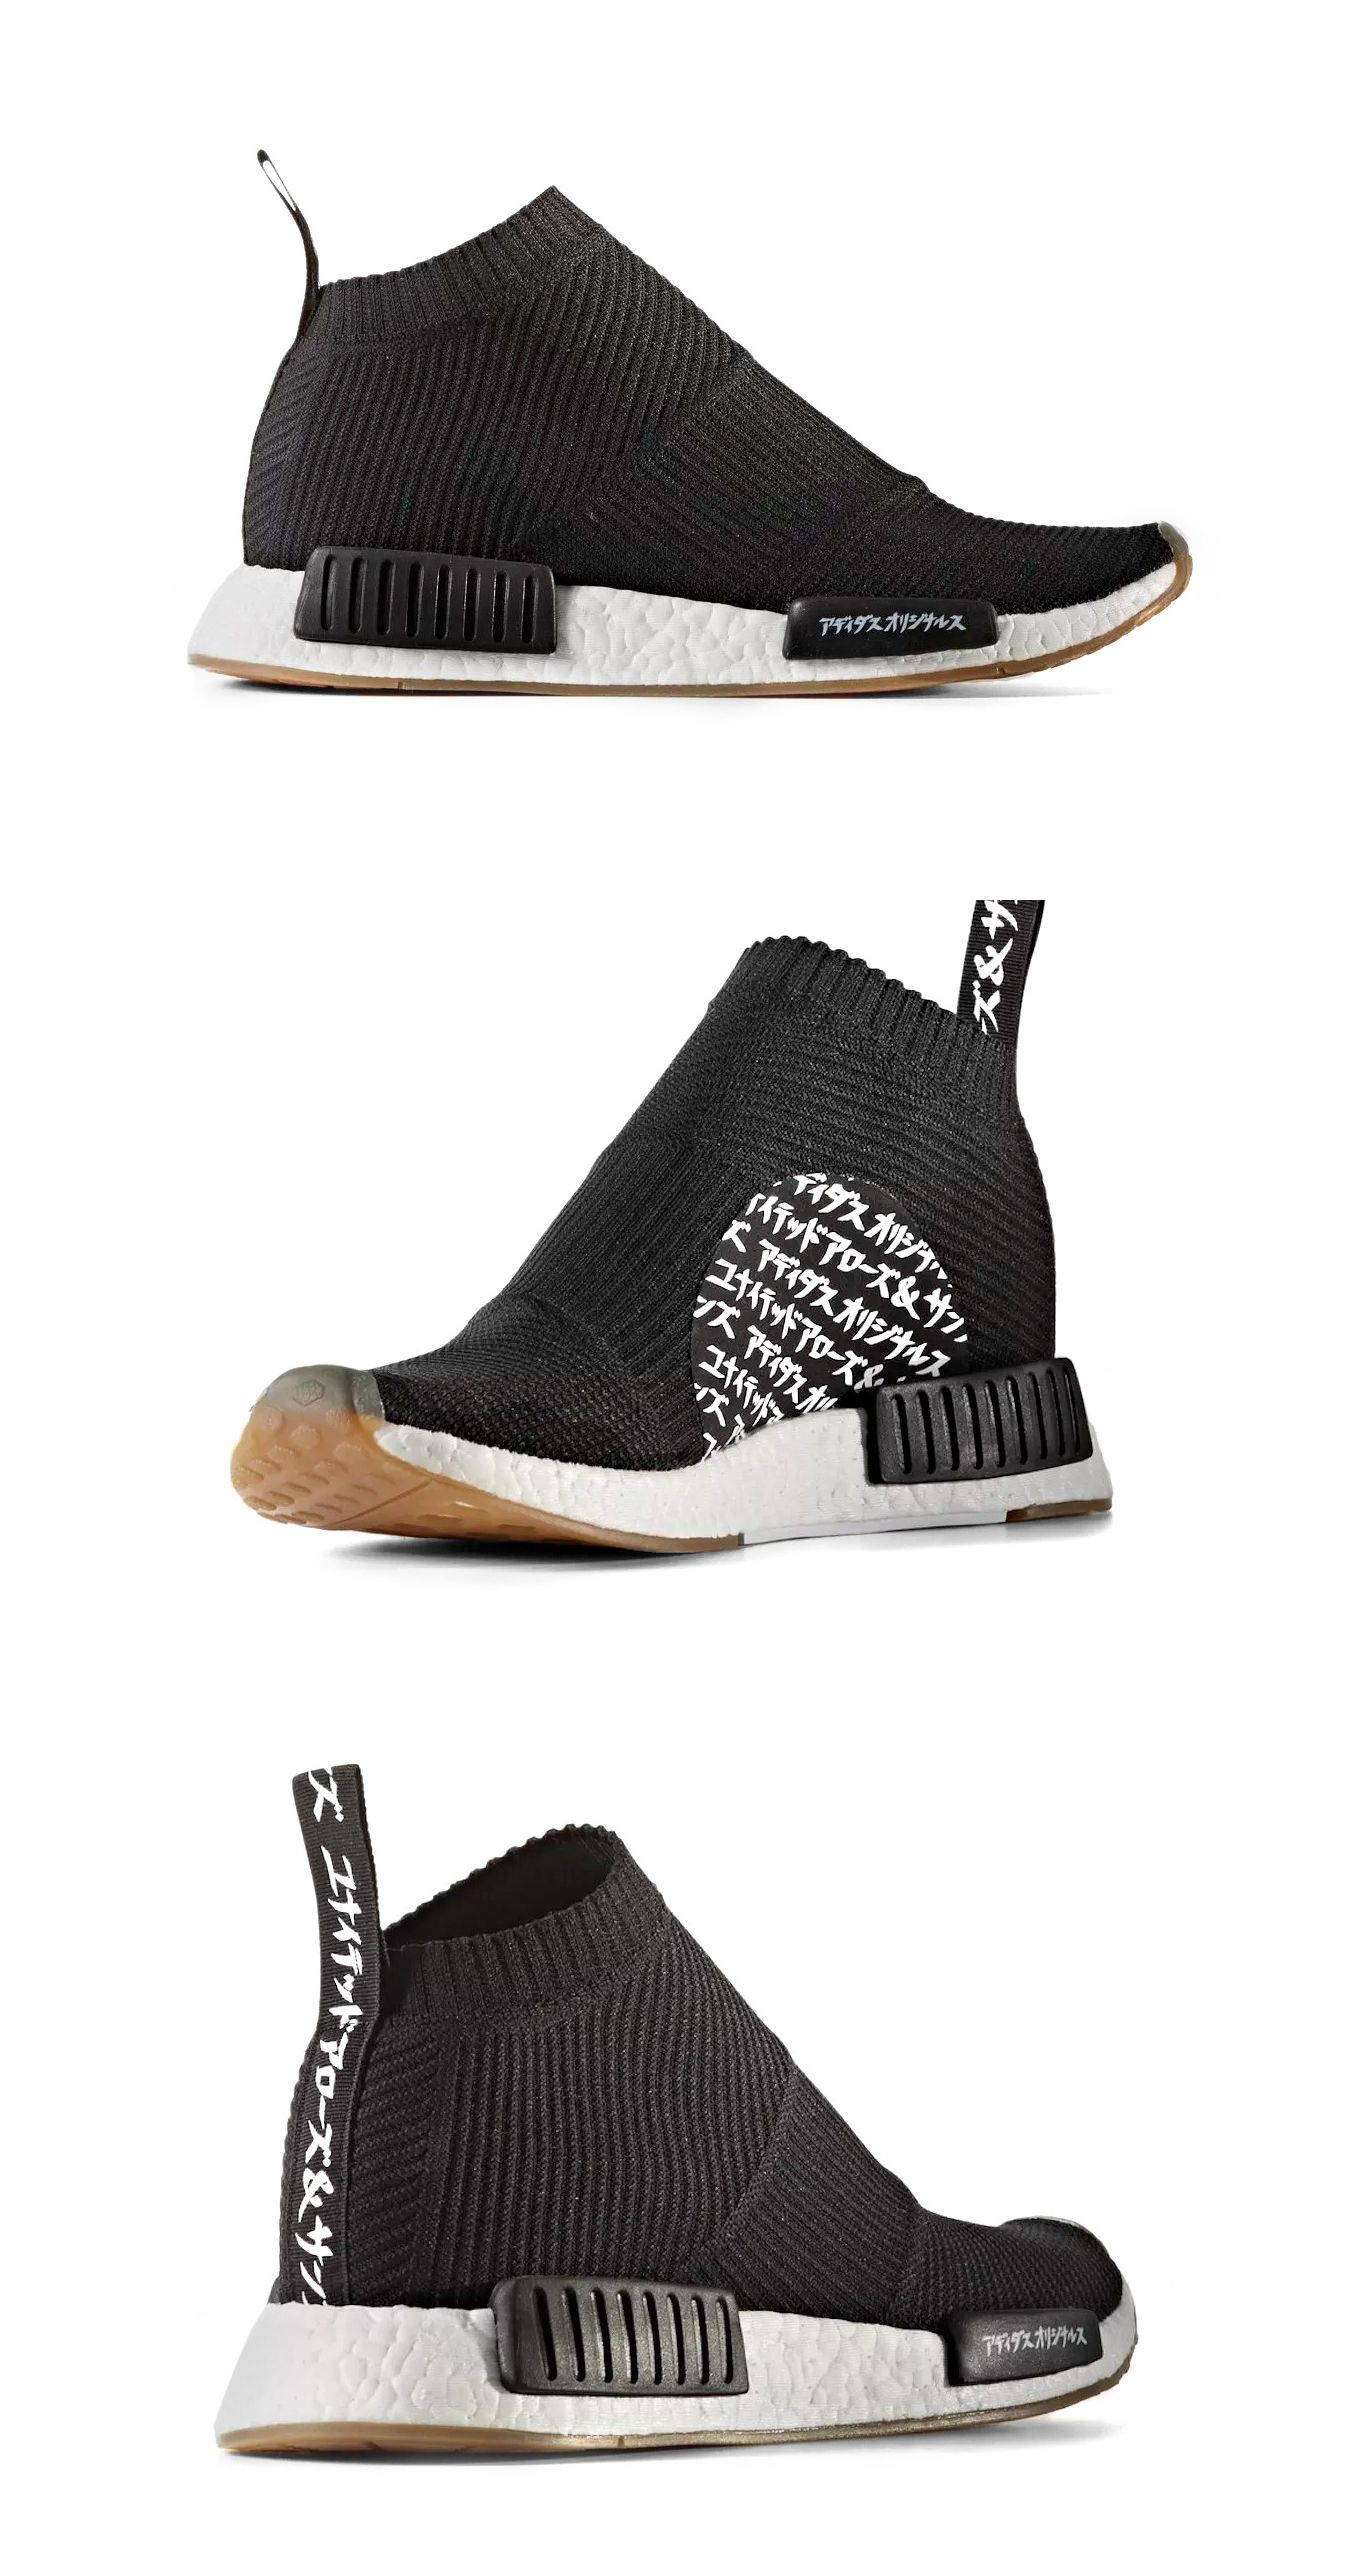 b4e8da5c35df1 Originals x UNITED ARROWS   SONS x MIKITYPE NMD City Sock